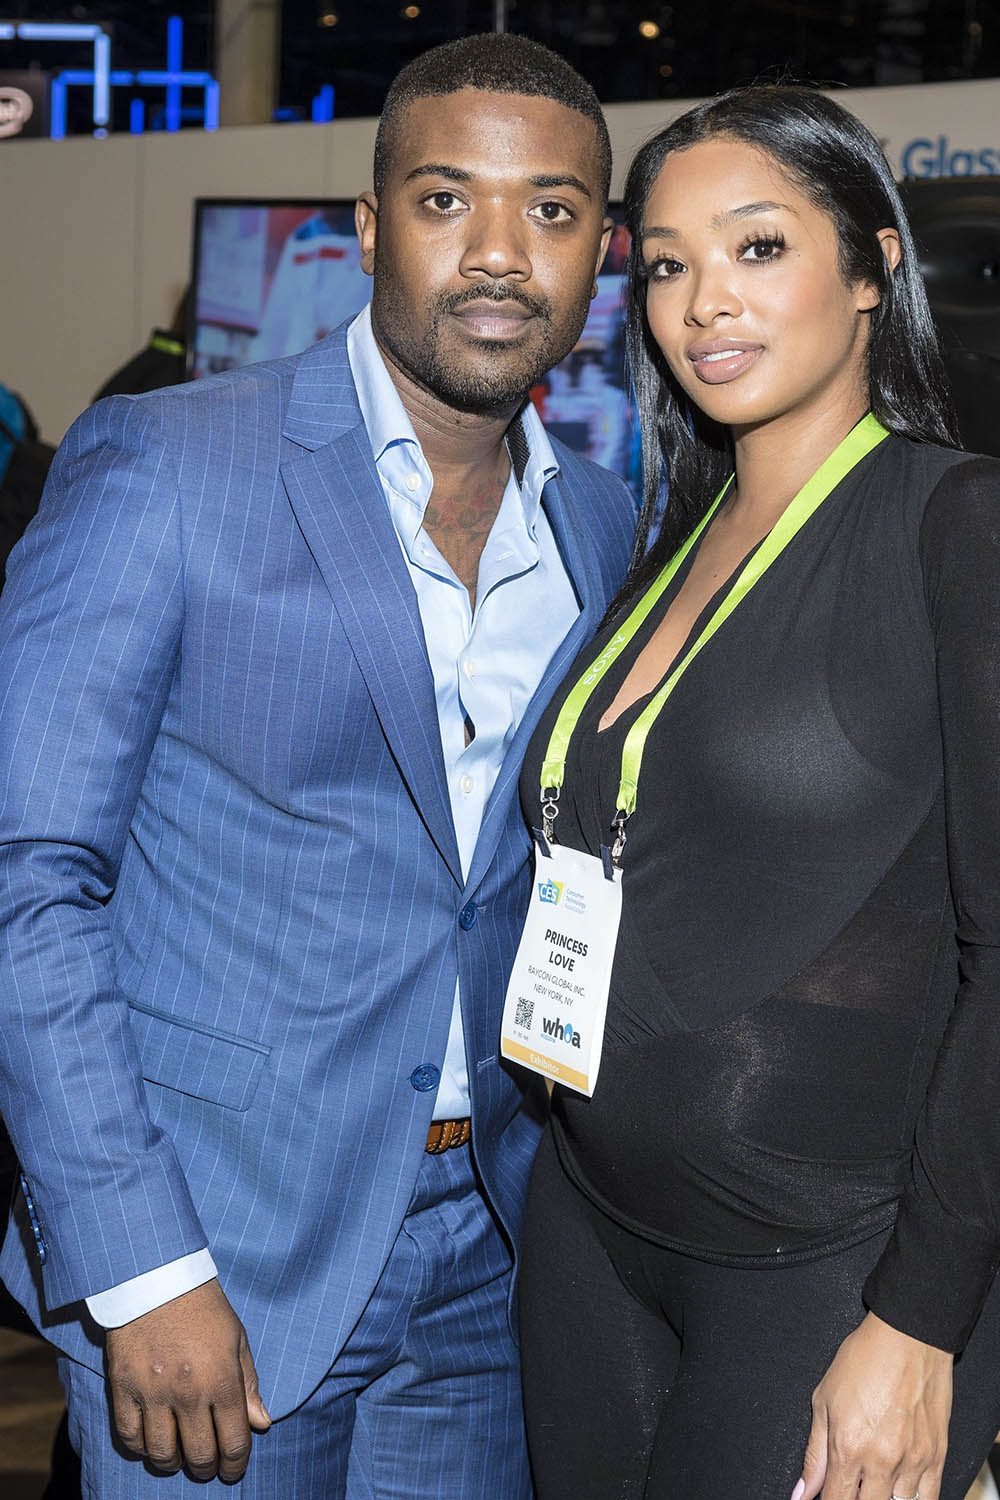 Ray J and Princess Love at CES 2018 in Las Vegas